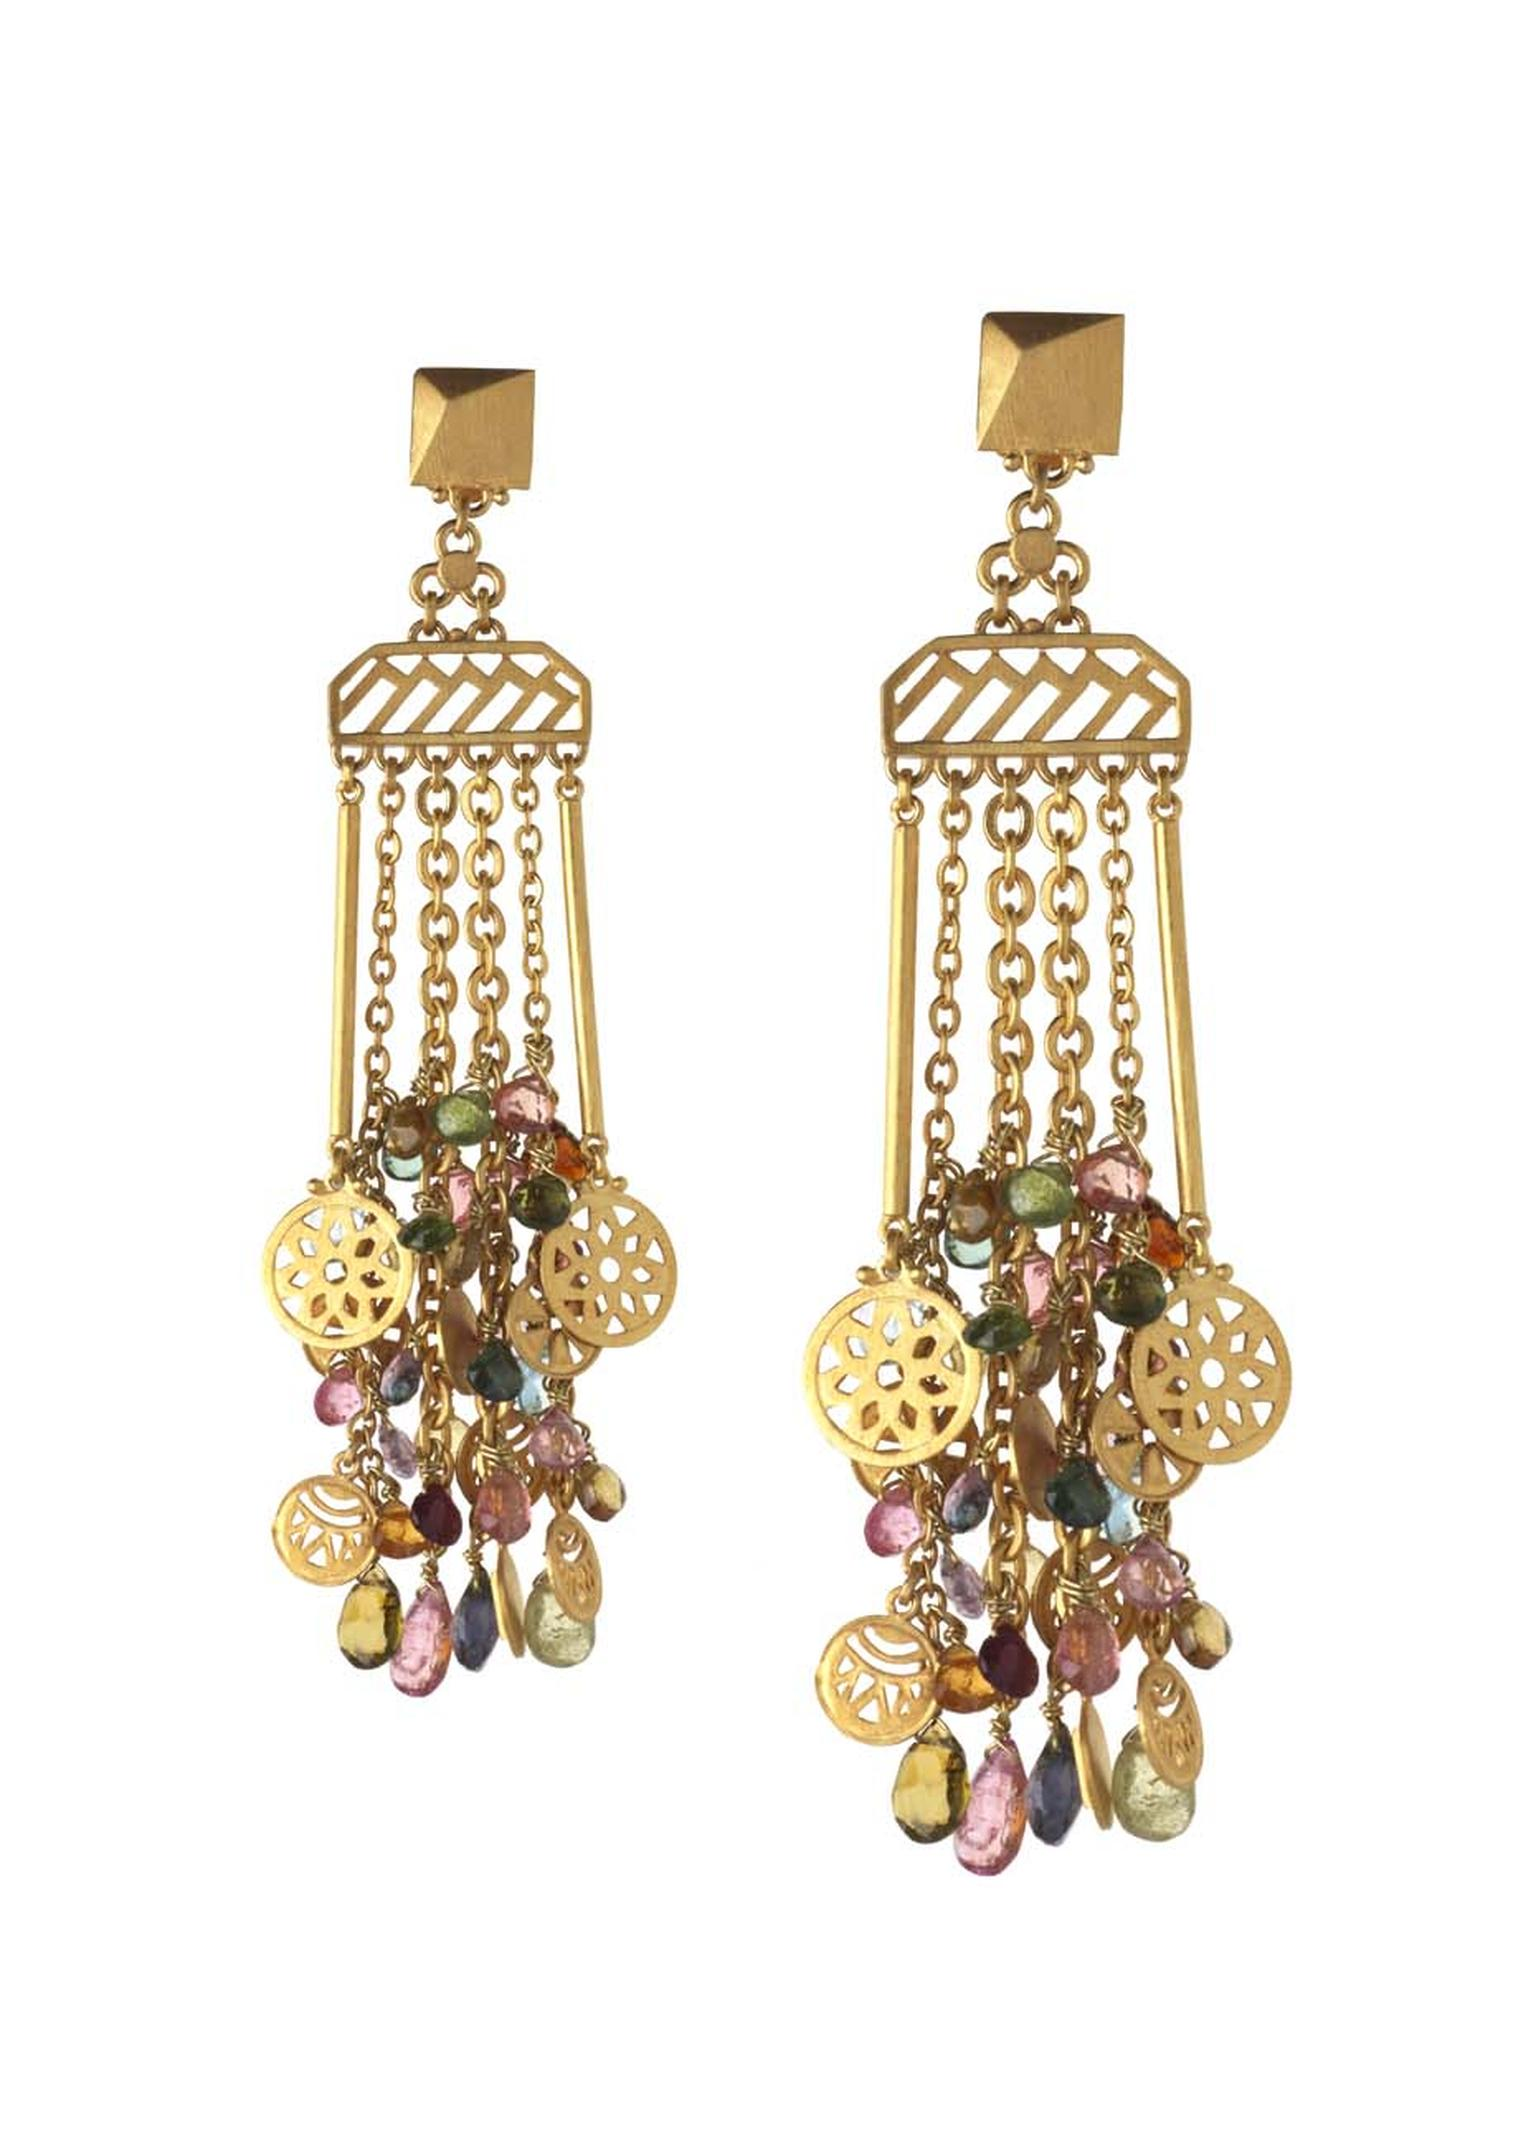 Azza Fahmy for Matthew Williamson Fringe Coin earrings from the Spring/Summer 2014 collection